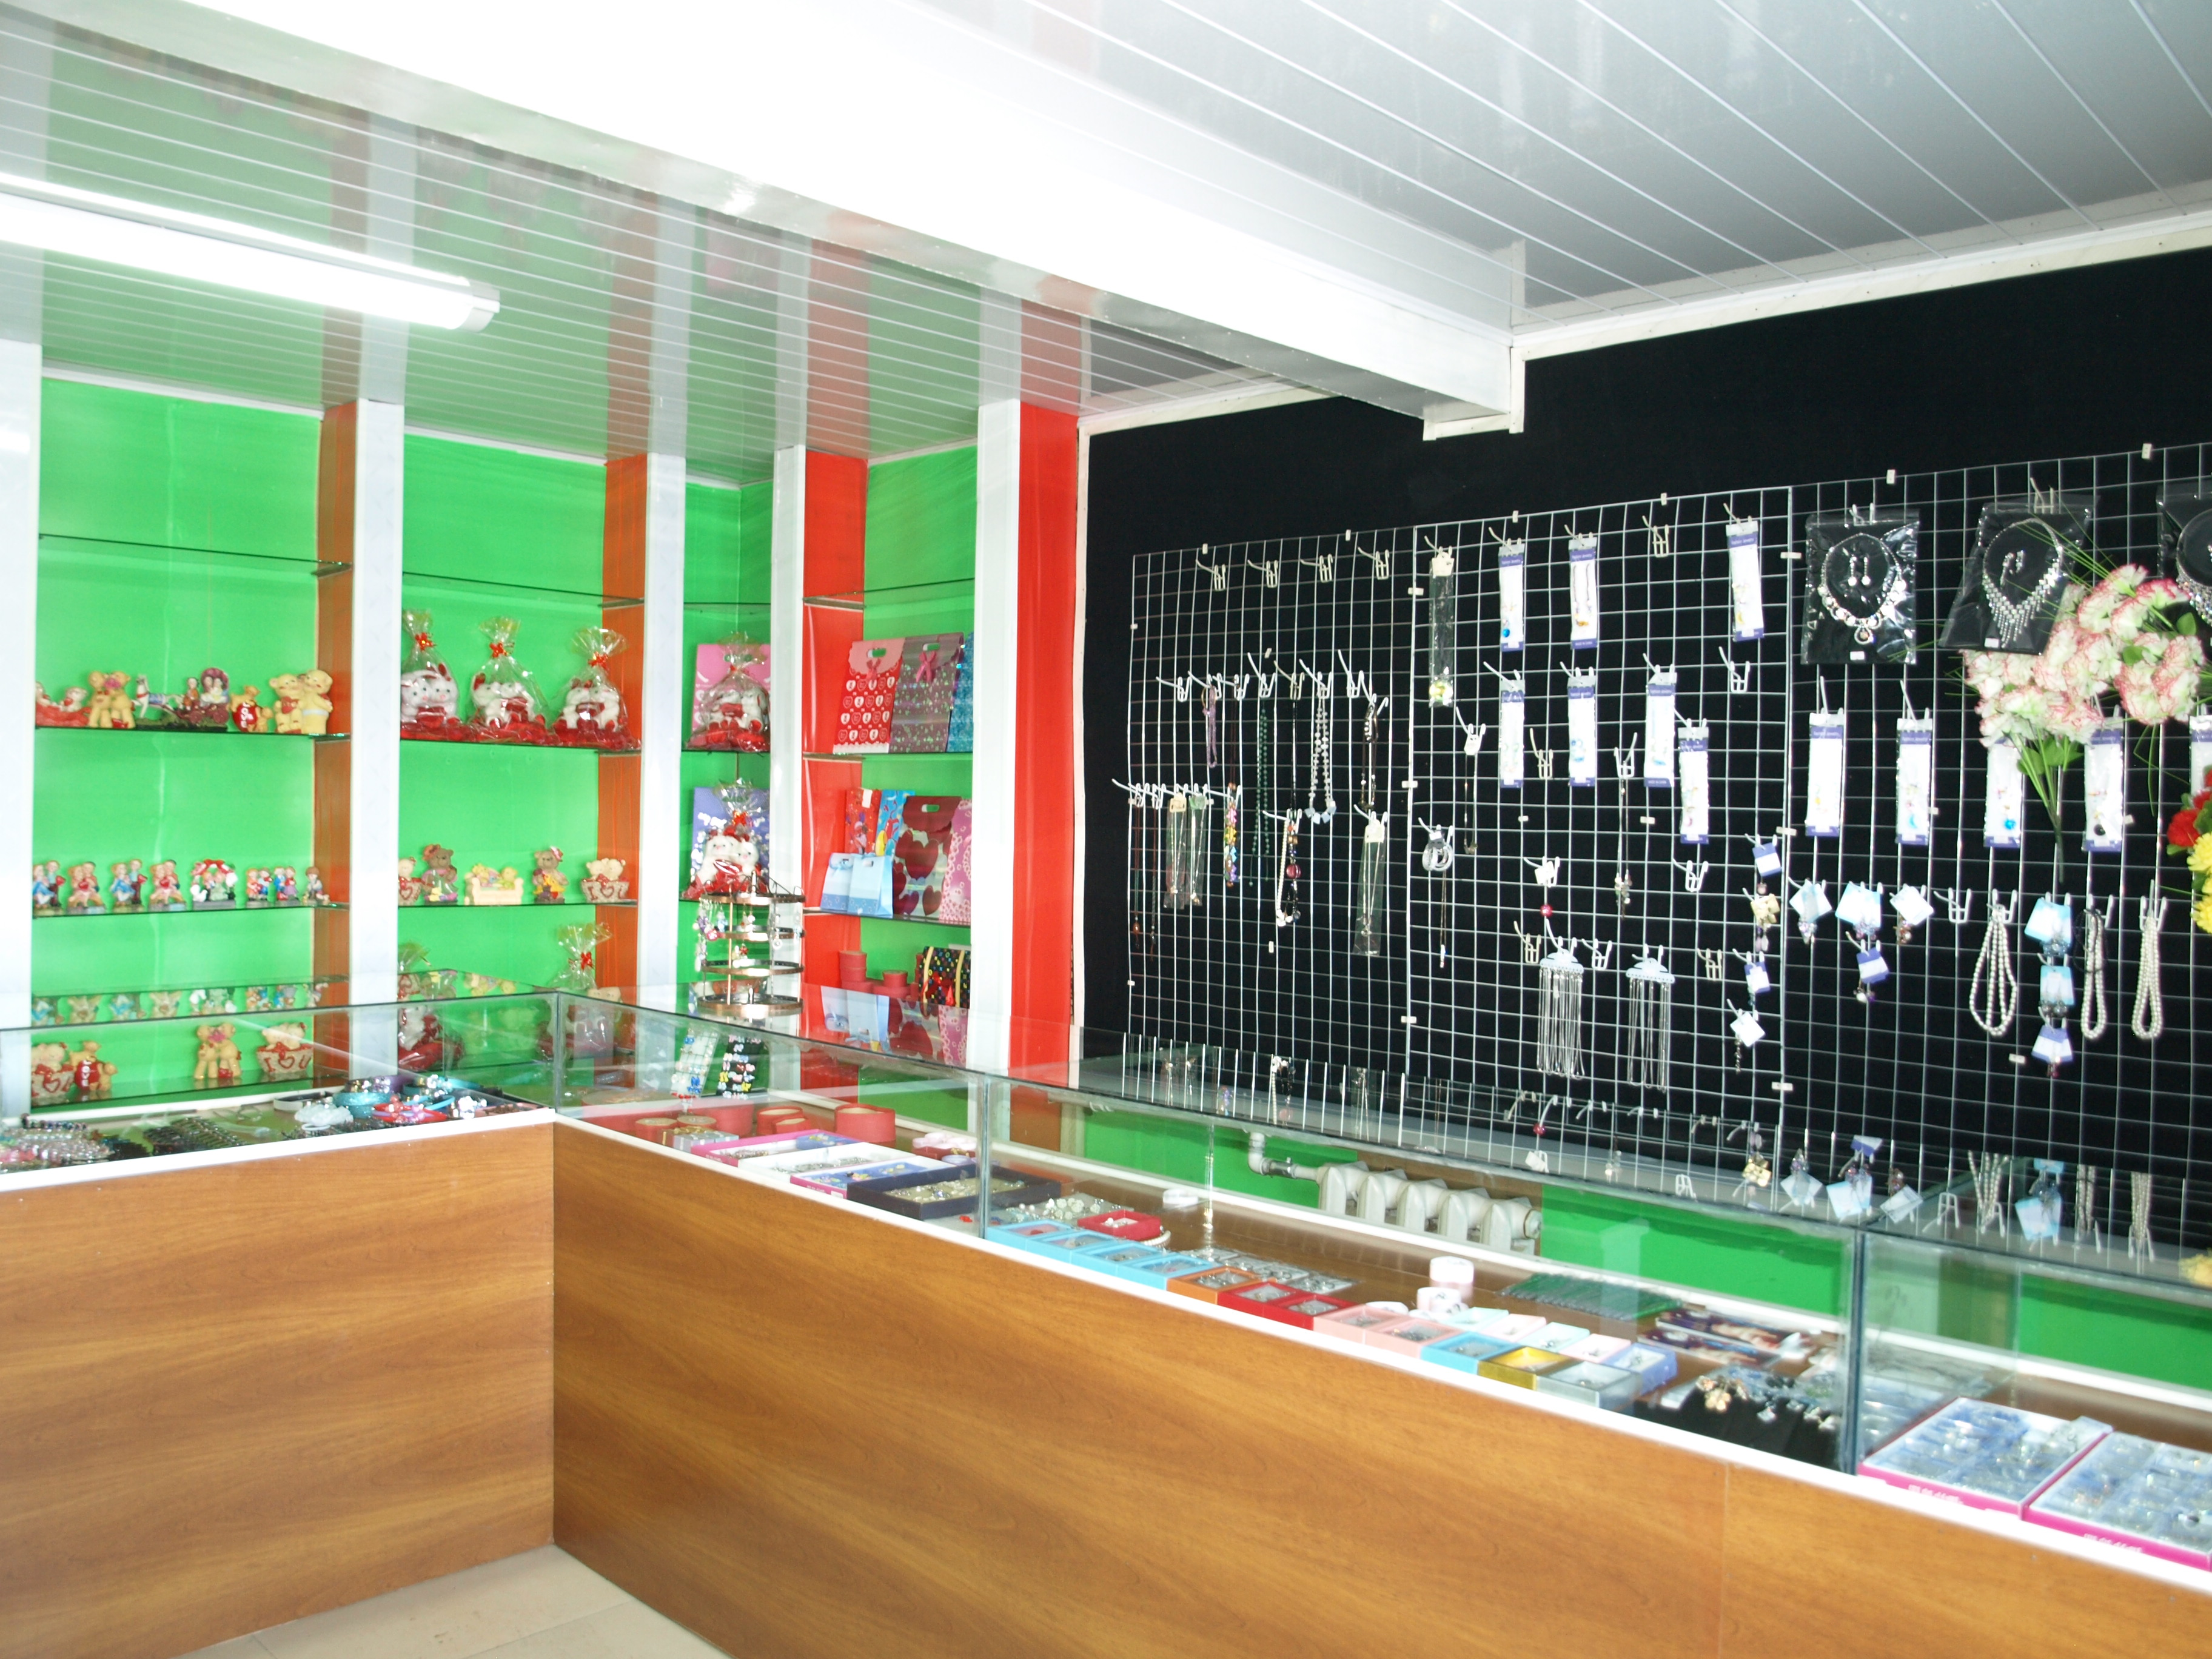 Jewelry shop in Bat-Ulzii Soum - Inside View